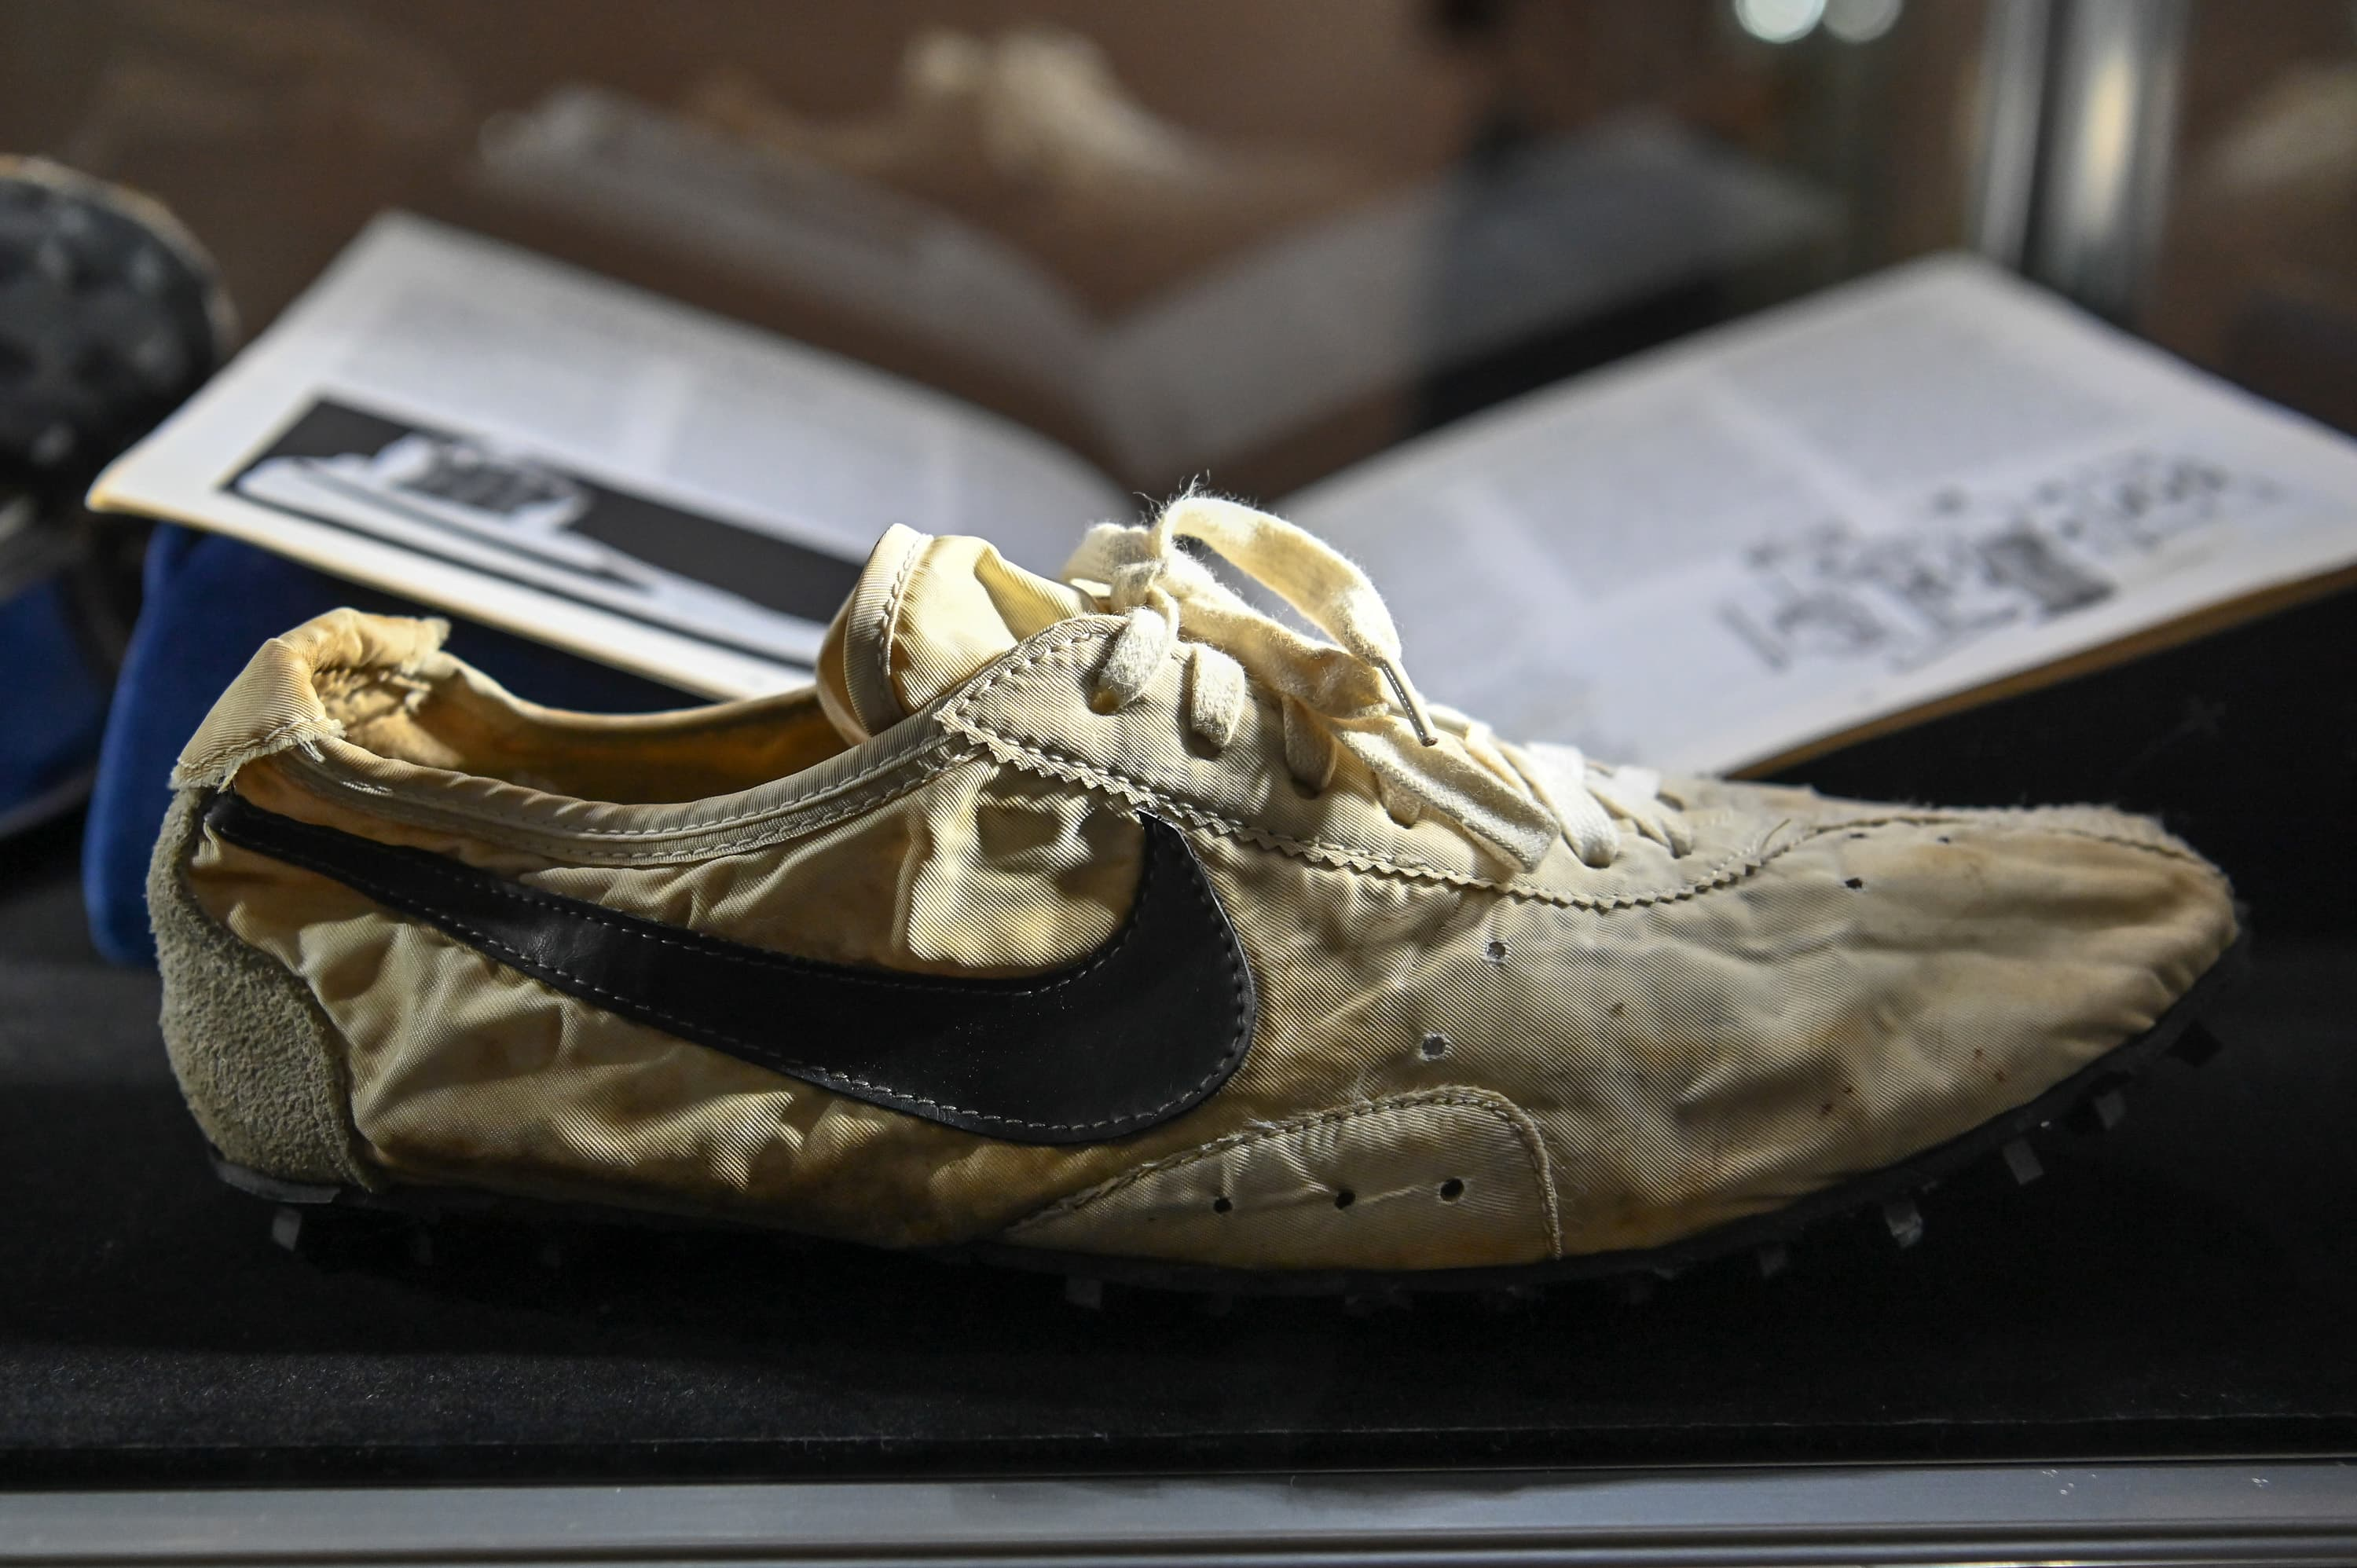 135a5087 Sotheby's sells sneaker collection for $850,000. Rare Nike 'Moon Shoe'  expected to fetch $160,000